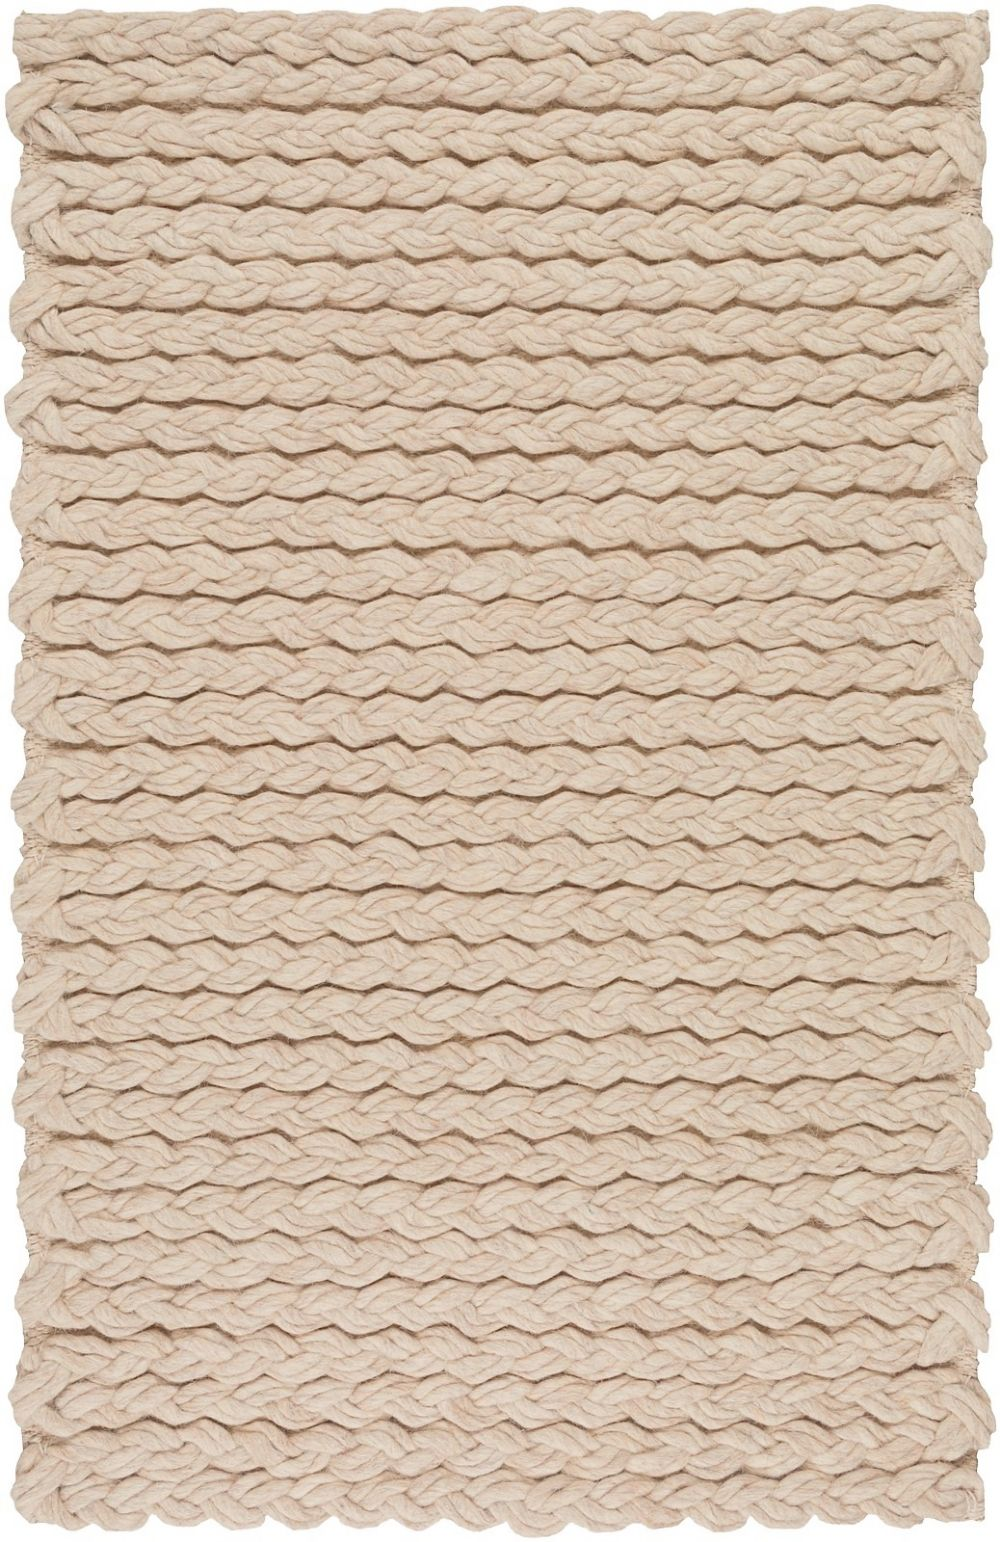 surya yukon contemporary area rug collection